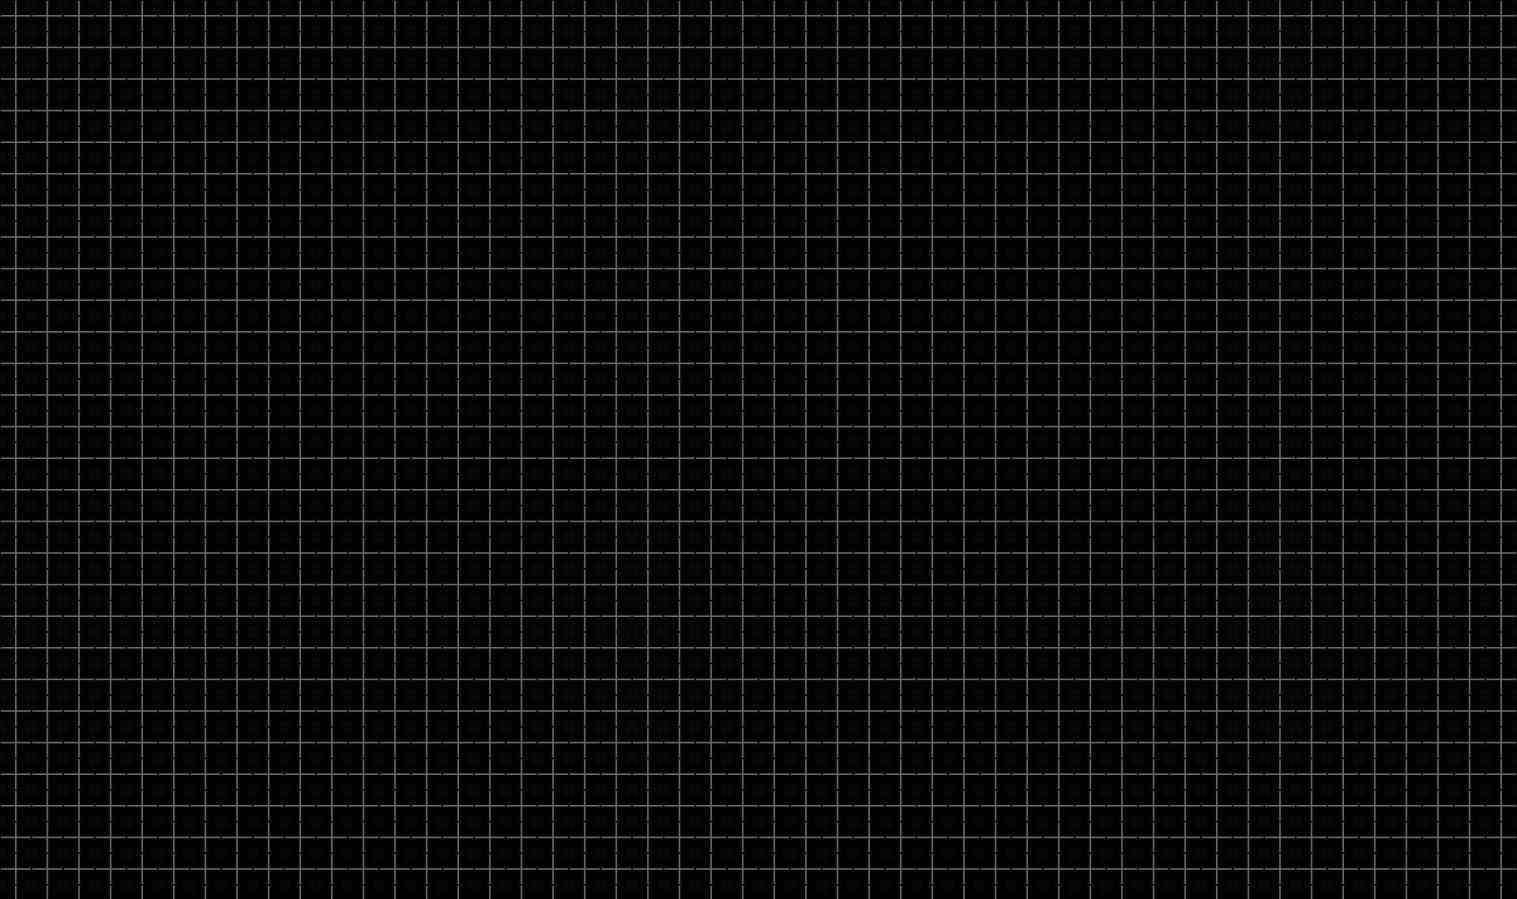 Aesthetic Black And White Grid Wallpaper 1517x899